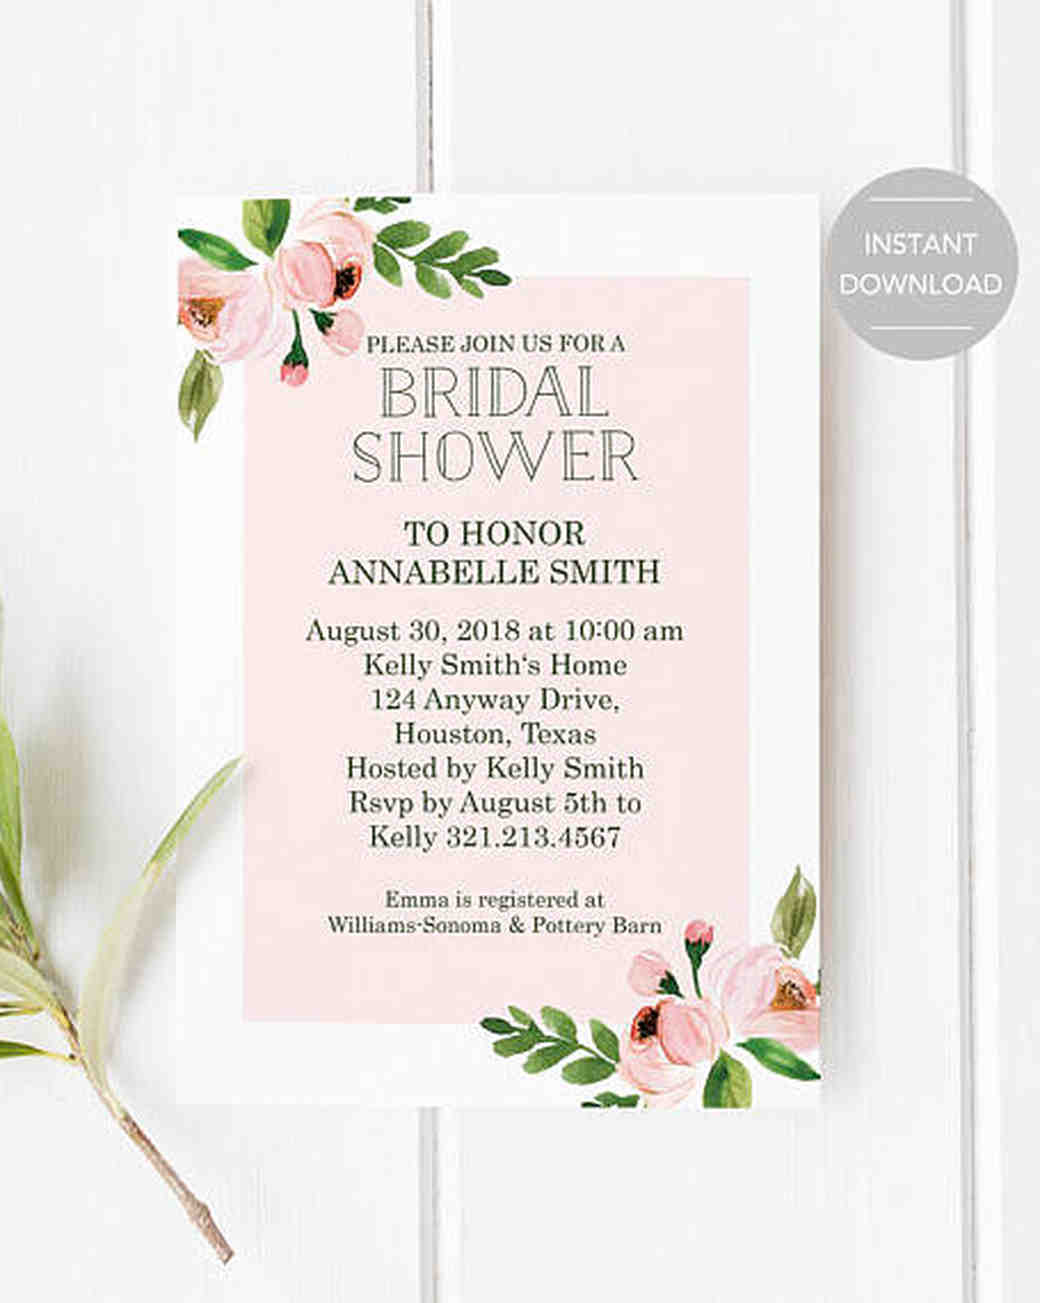 10 Affordable Bridal Shower Invitations You Can Print At Home | Martha  Stewart Weddings